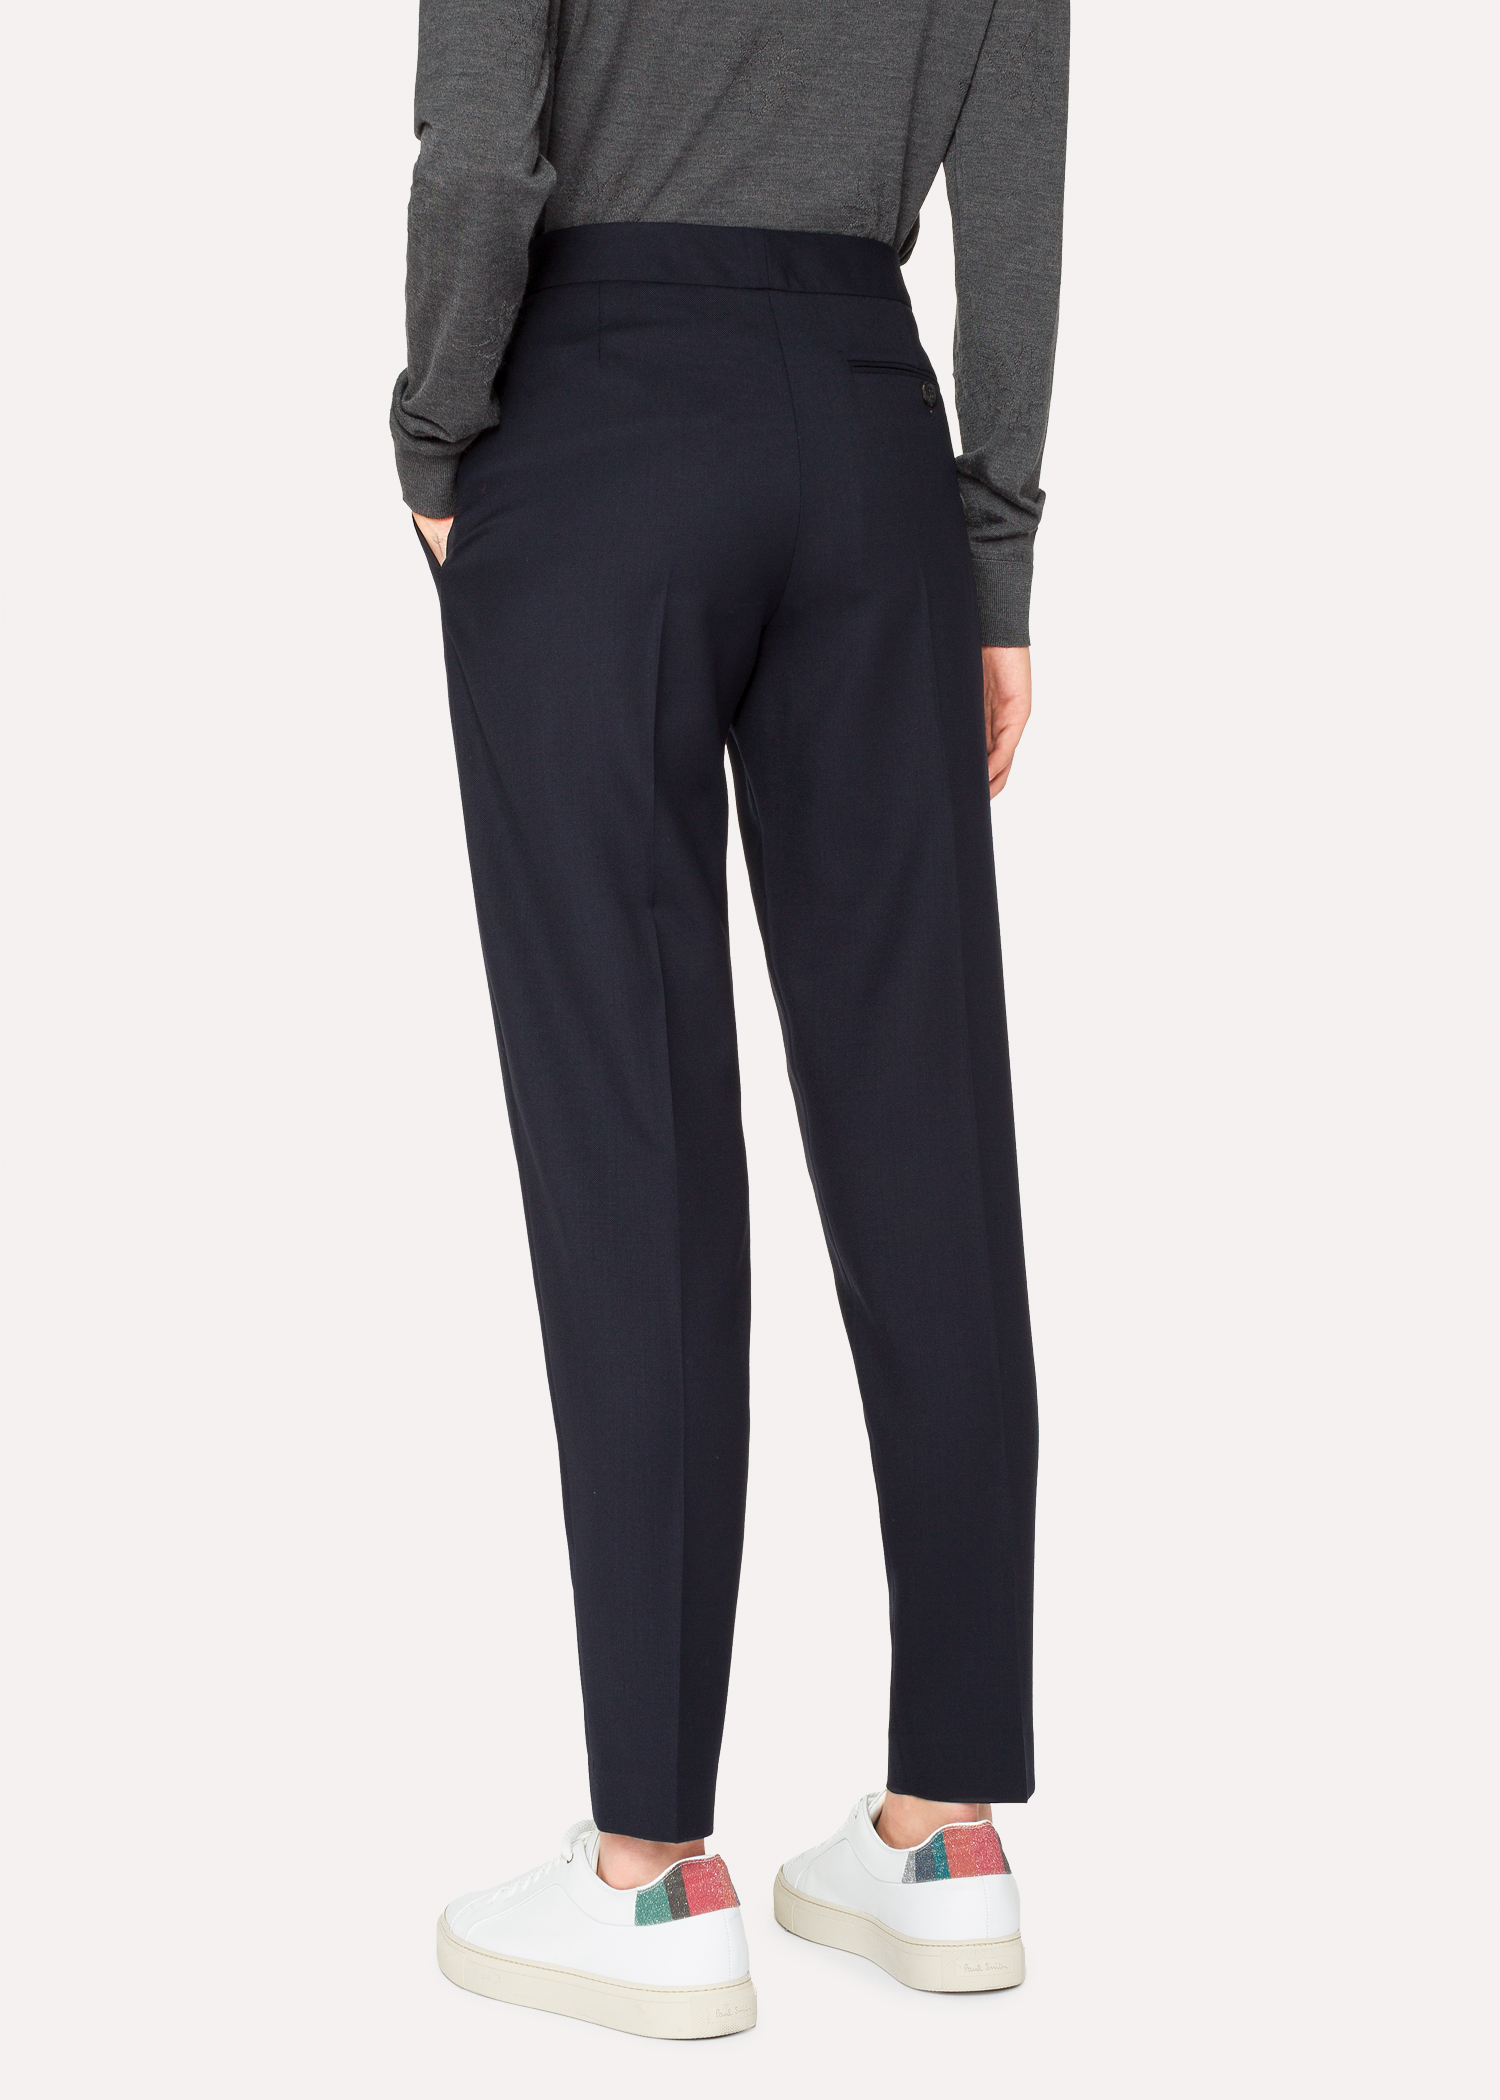 cdce1e25a2b7 A Suit To Travel In - Women s Classic-Fit Dark Navy Wool Pants ...